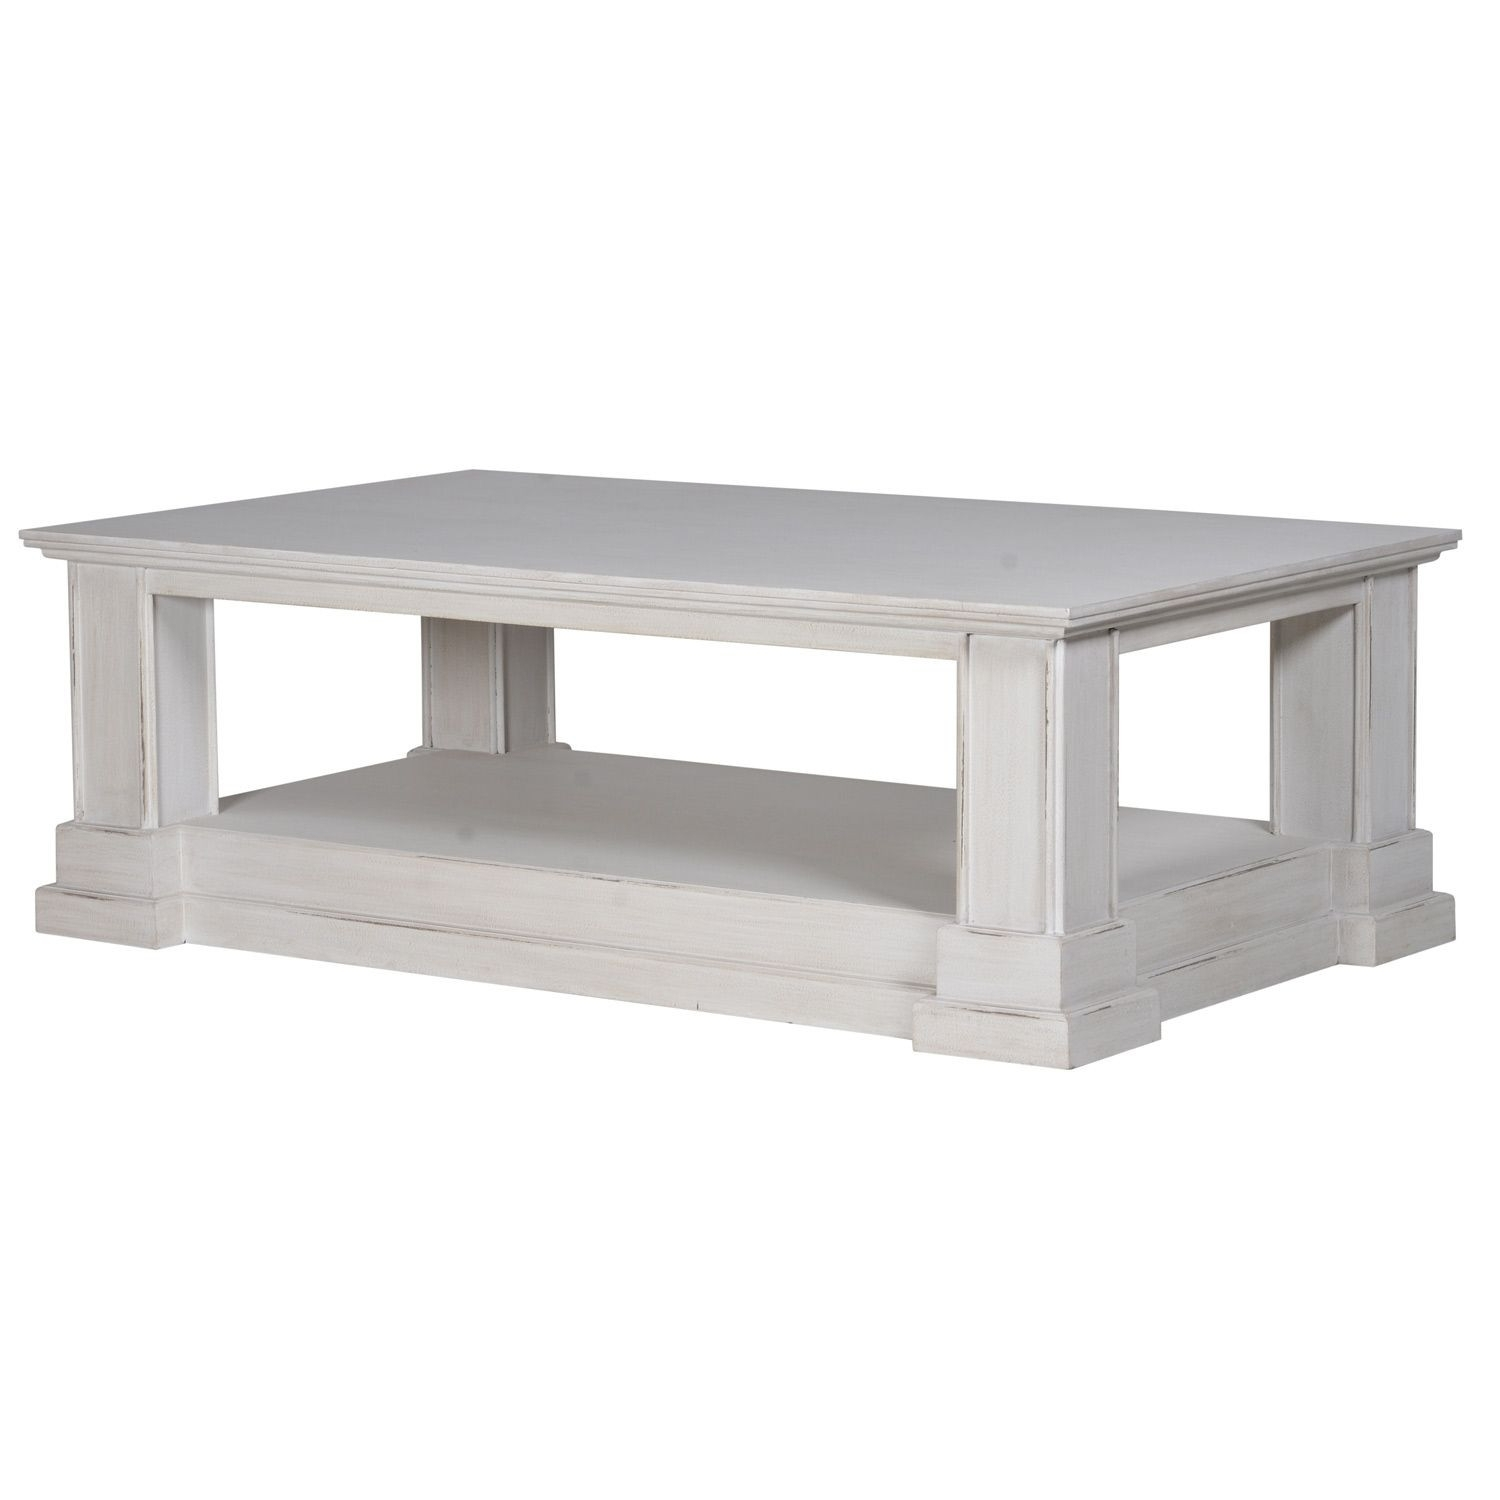 Gray Wash Coffee Table Fresh Awesome Lime Wash Coffee Table Tables for Limewash Coffee Tables (Image 5 of 30)